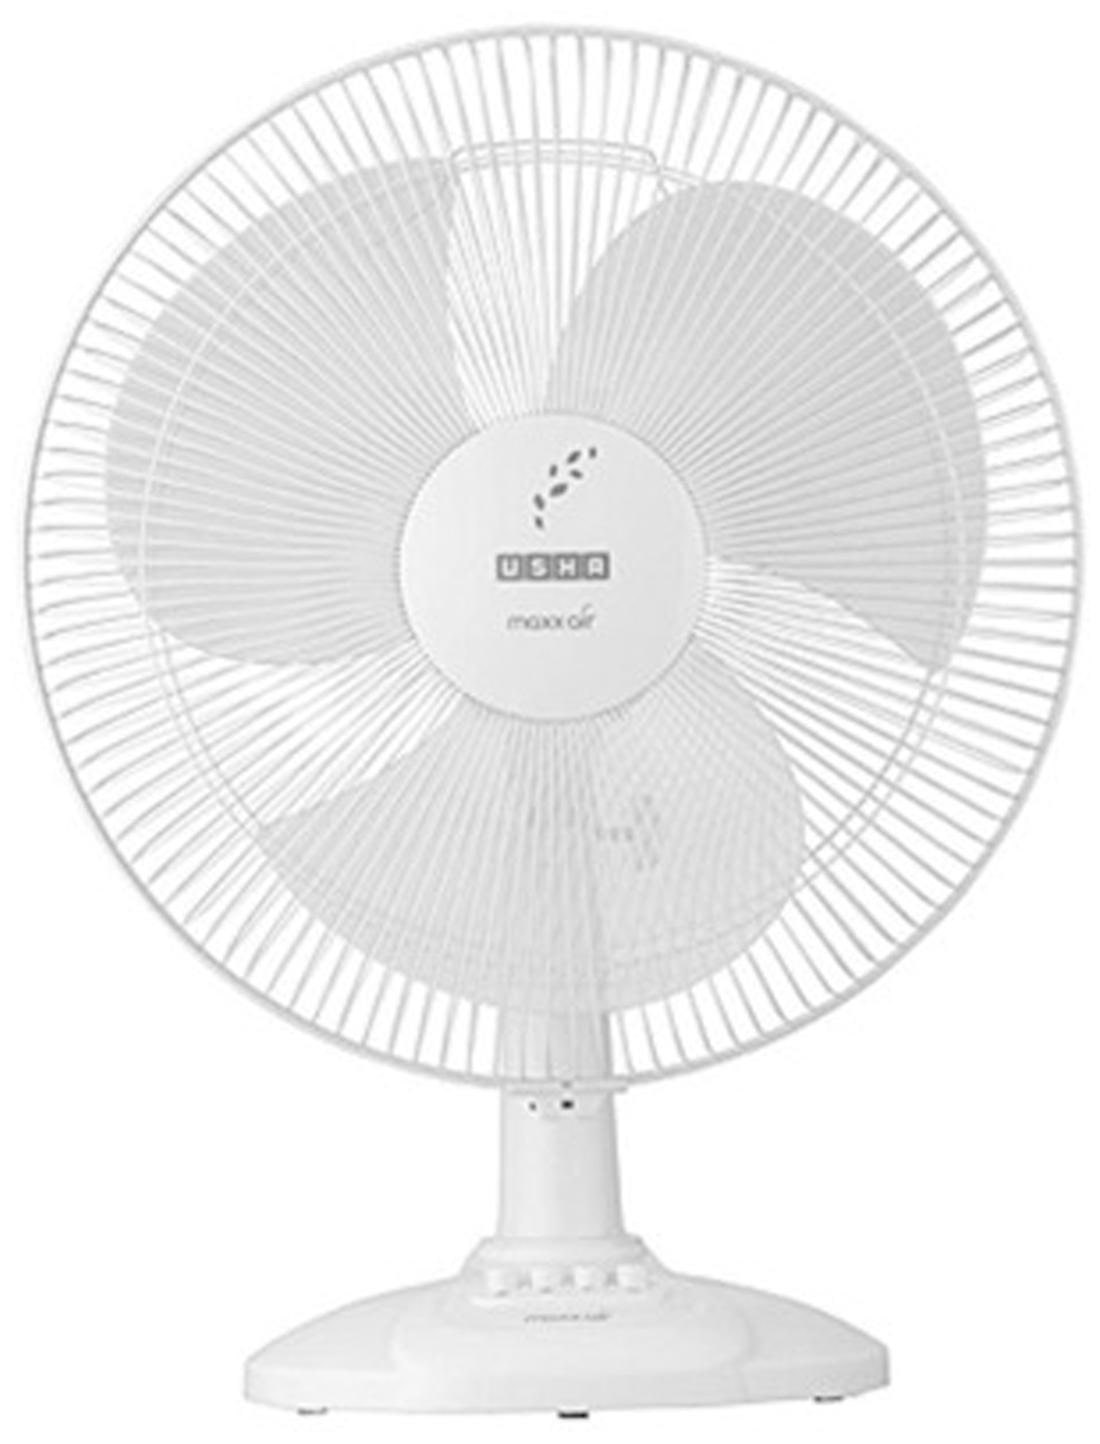 usha fan buy usha fans online at best price paytm mall Ceiling Fan Reverse Switch Replacement Part usha mist air duos 400mm table fan